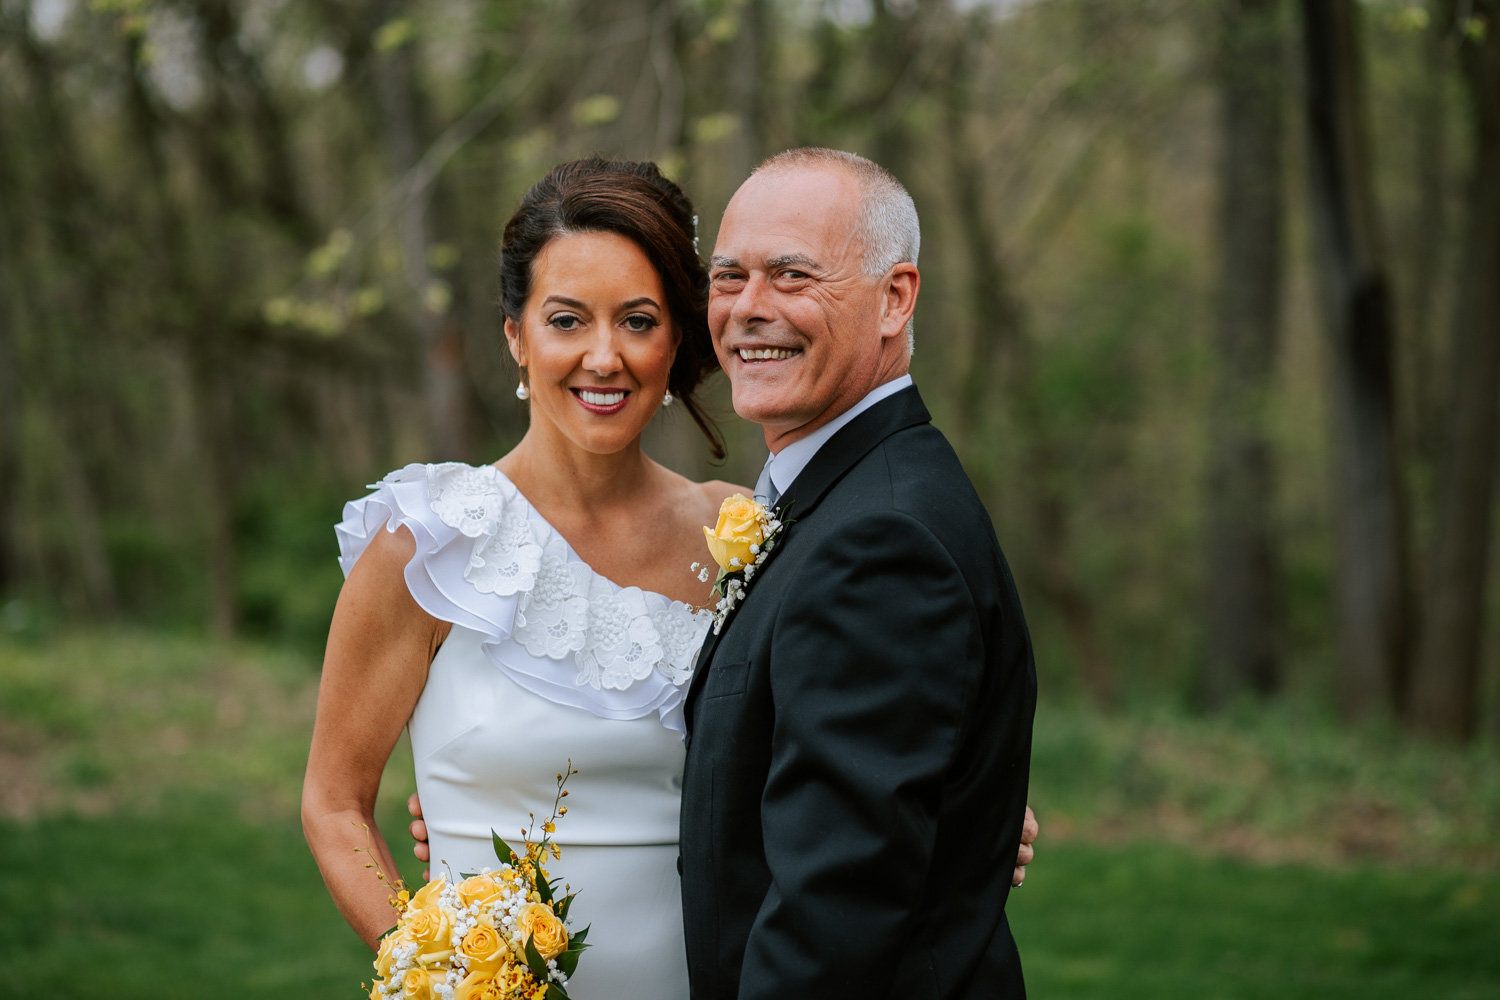 Wedding-Photographer-Lafayette-Indiana-4